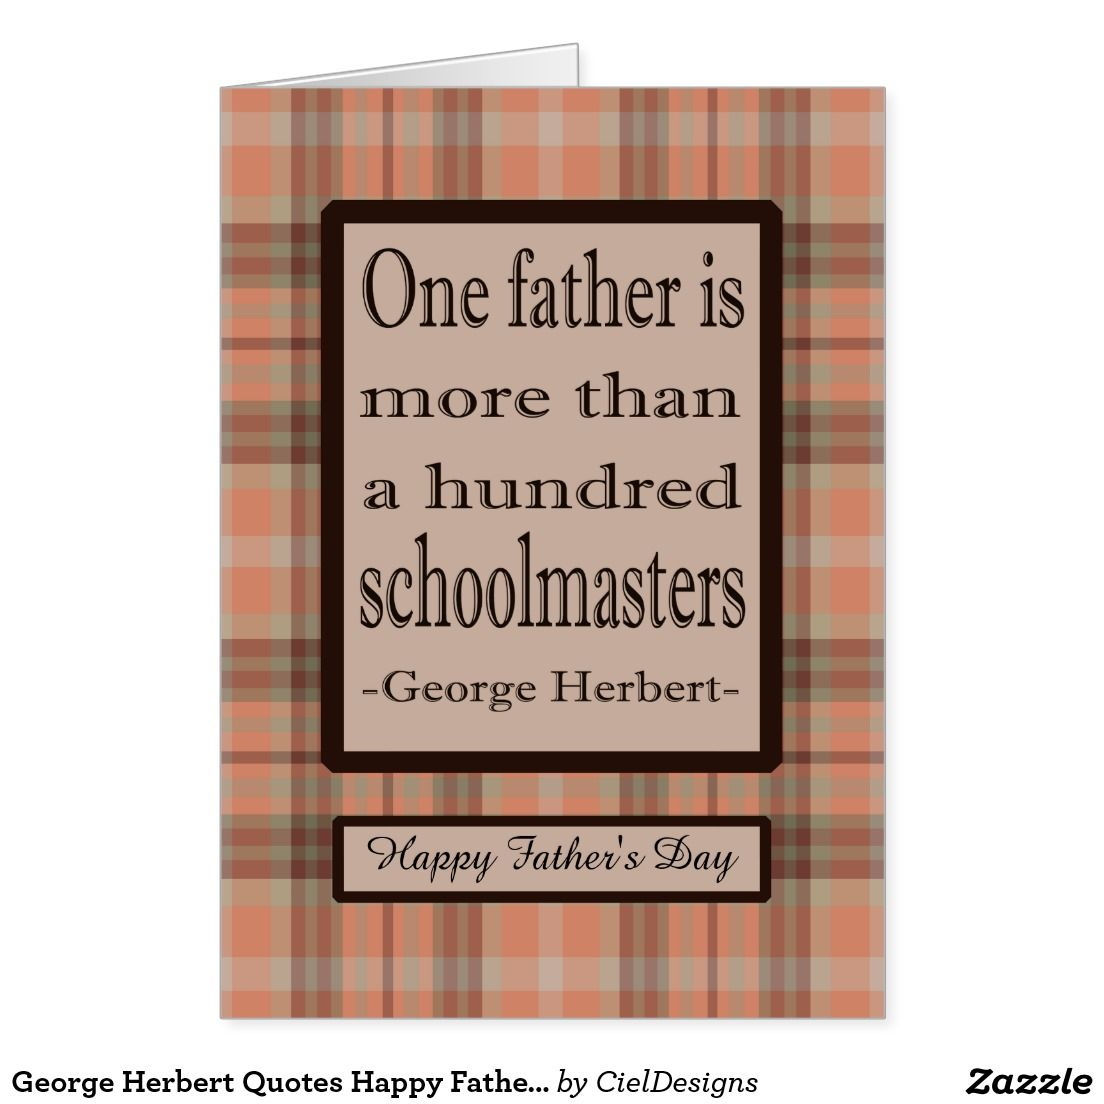 George Herbert Quotes Happy Father's Day Greeting Card